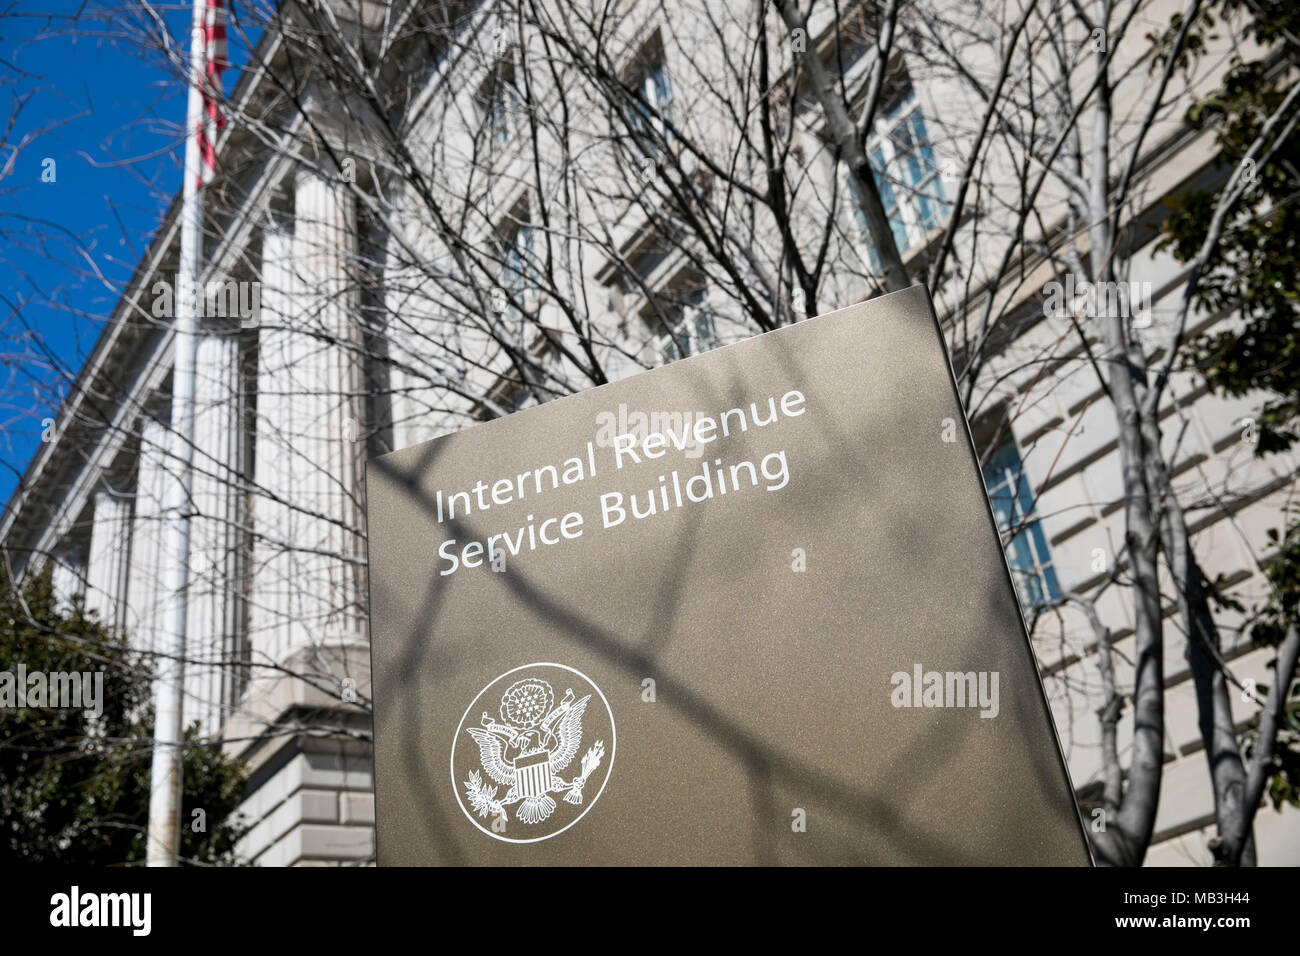 Irs Office Stock Photos & Irs Office Stock Images - Alamy